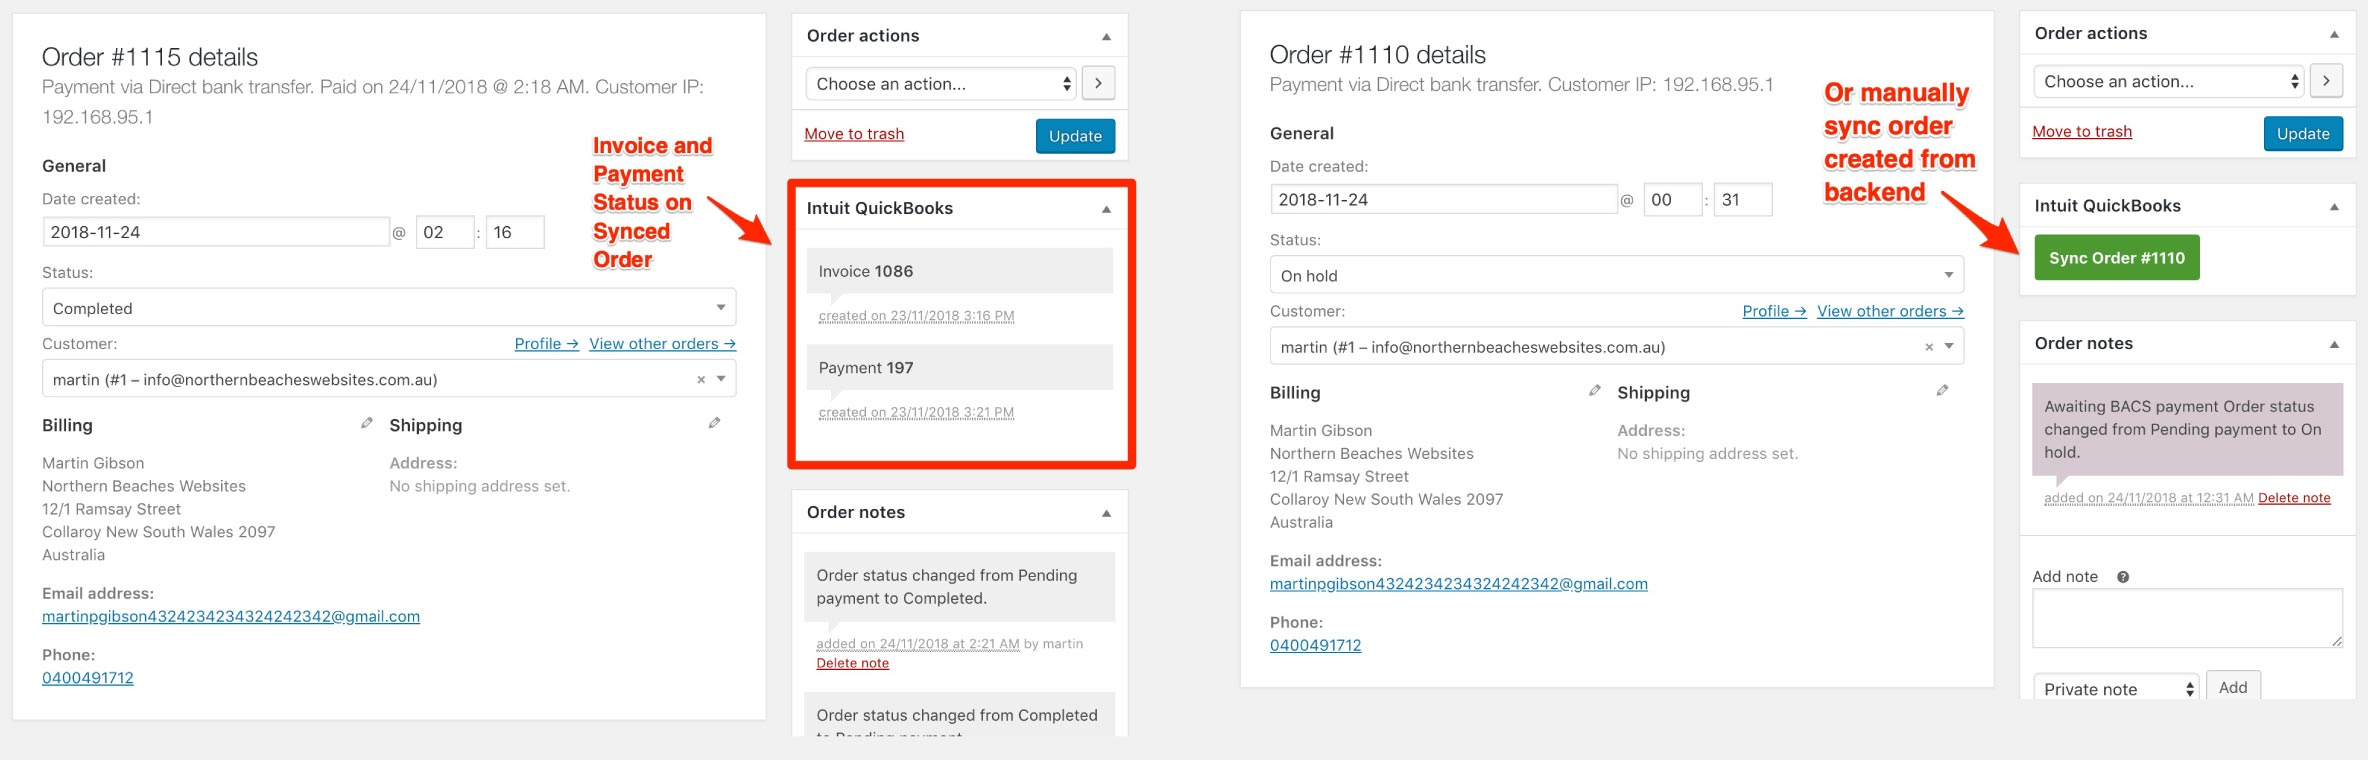 WooCommerce to Intuit QuickBooks Order Page Functions